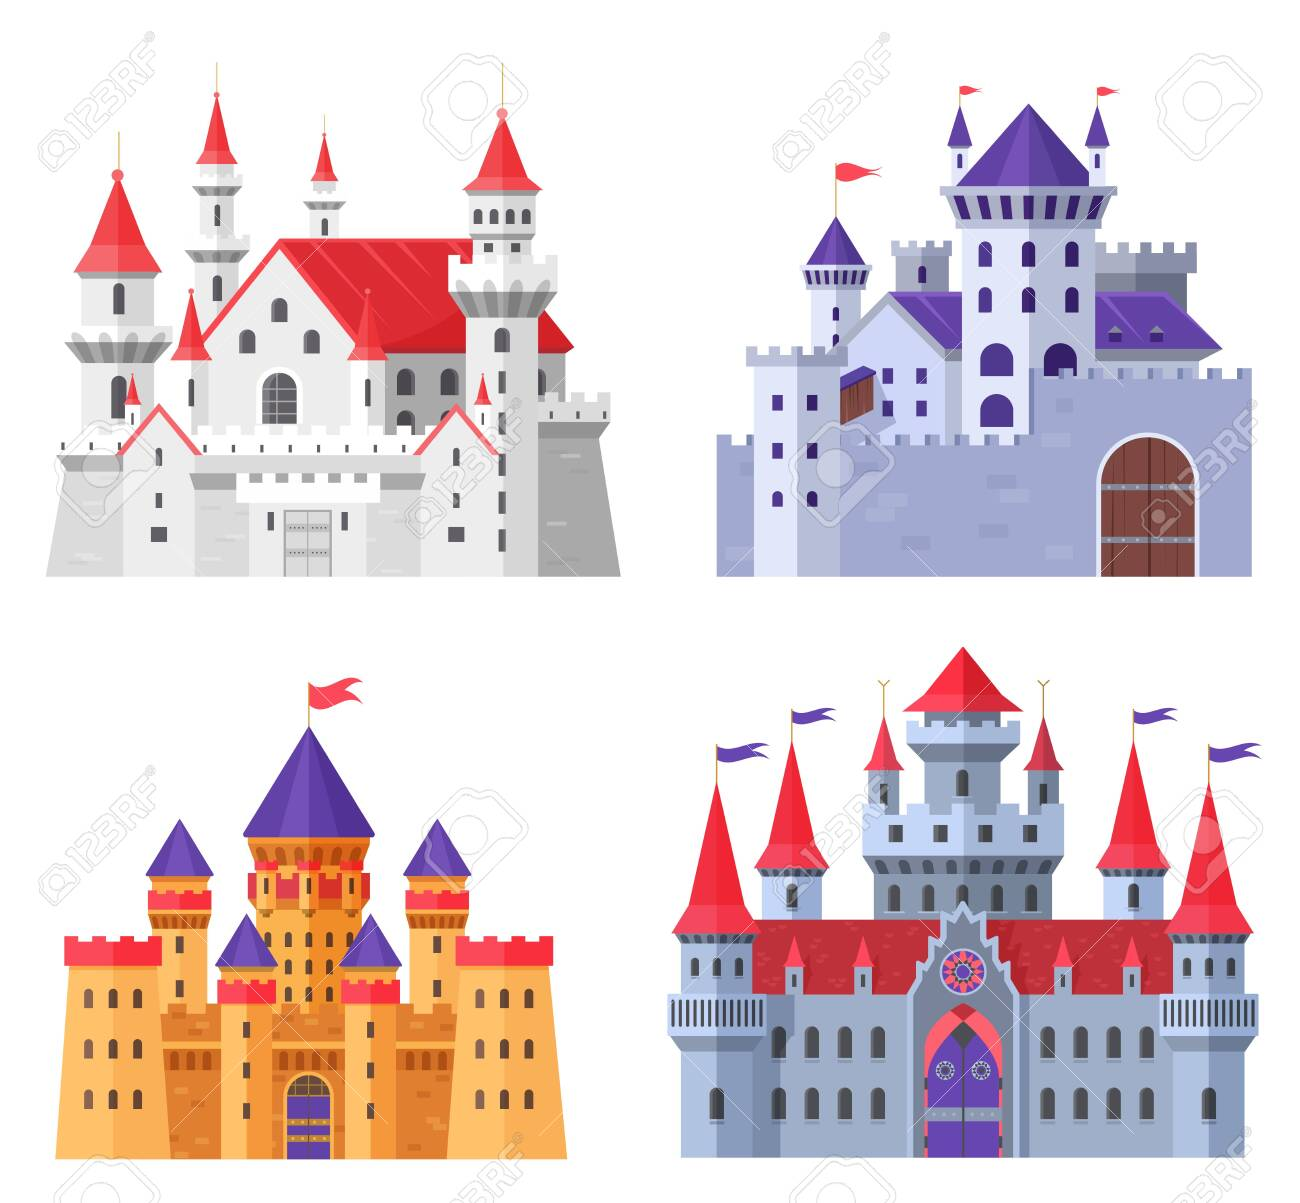 Medieval fort castle vector illustration set. Cartoon flat old fantasy kingdom collection of royal fairytale fortress for king and queen, fairy citadel, fortified palaces with gate isolated on white - 151166497